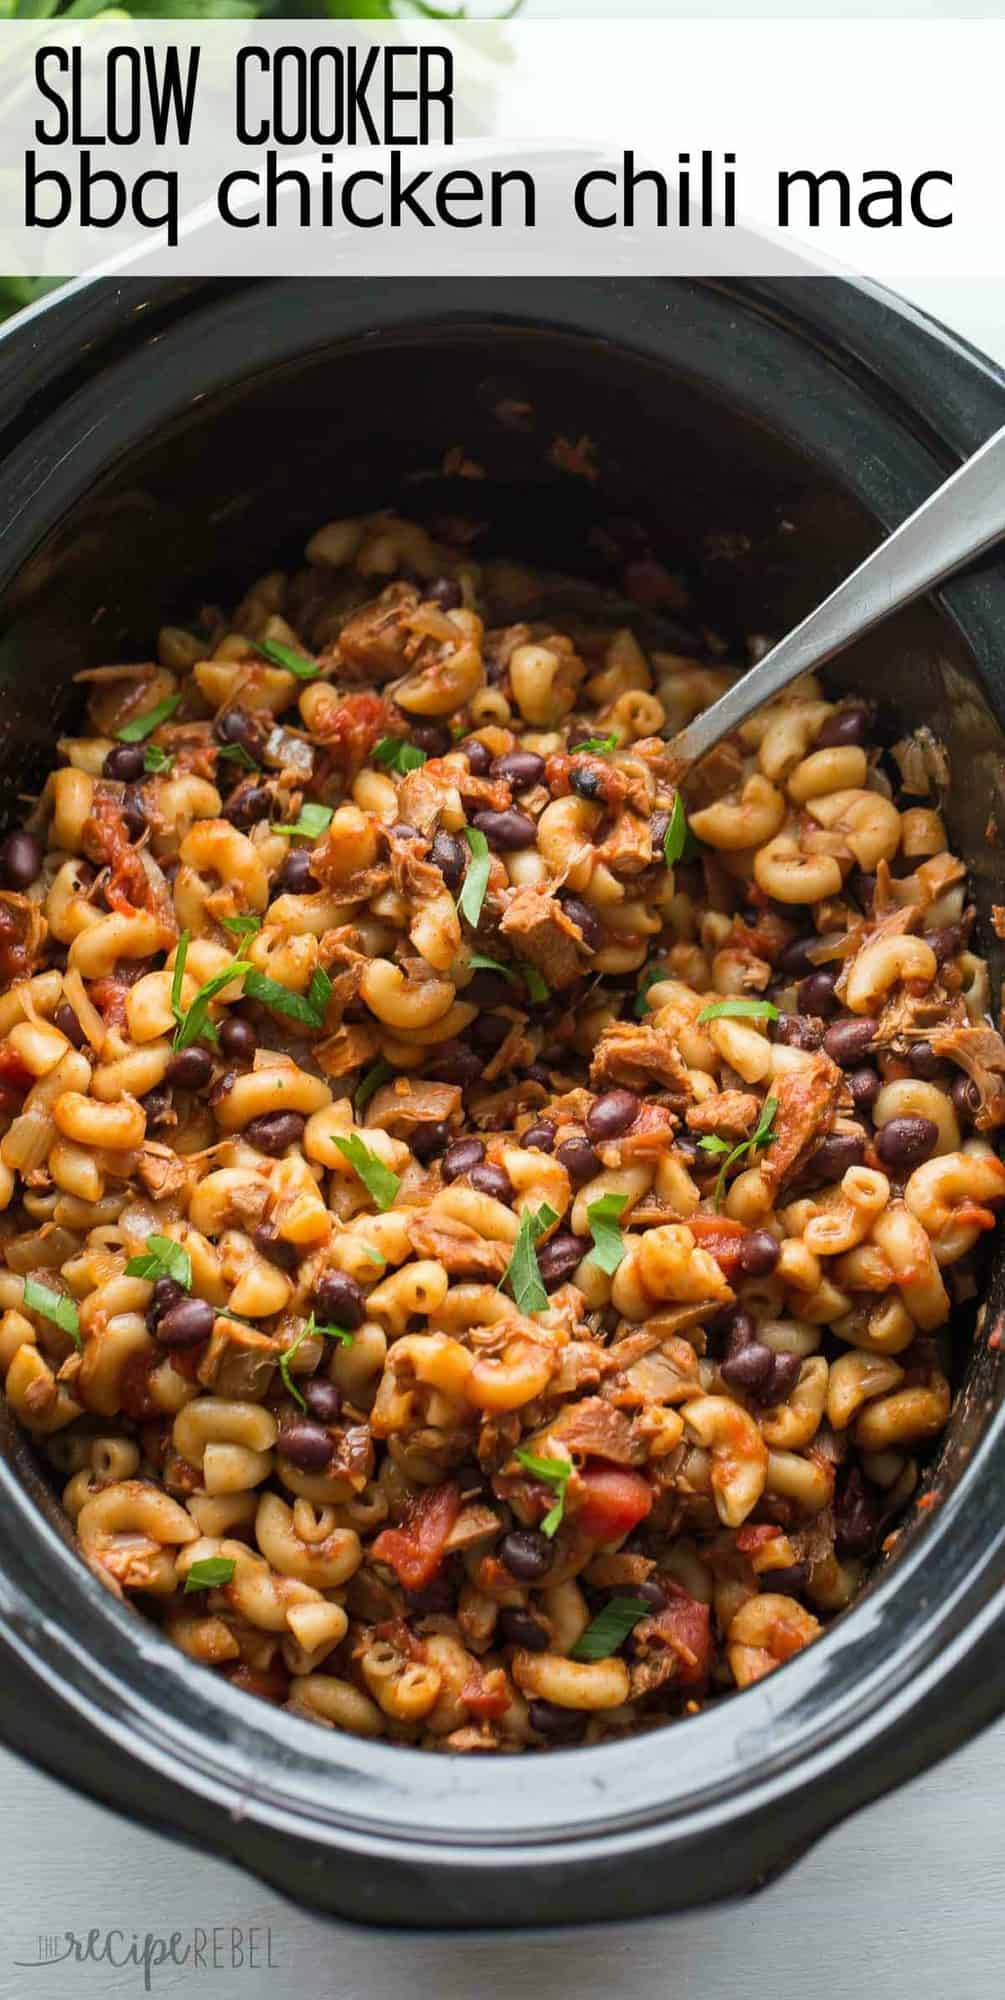 Slow Cooker BBQ Chicken Chili Mac is a hearty one pot pasta meal that cooks completely in the crockpot!